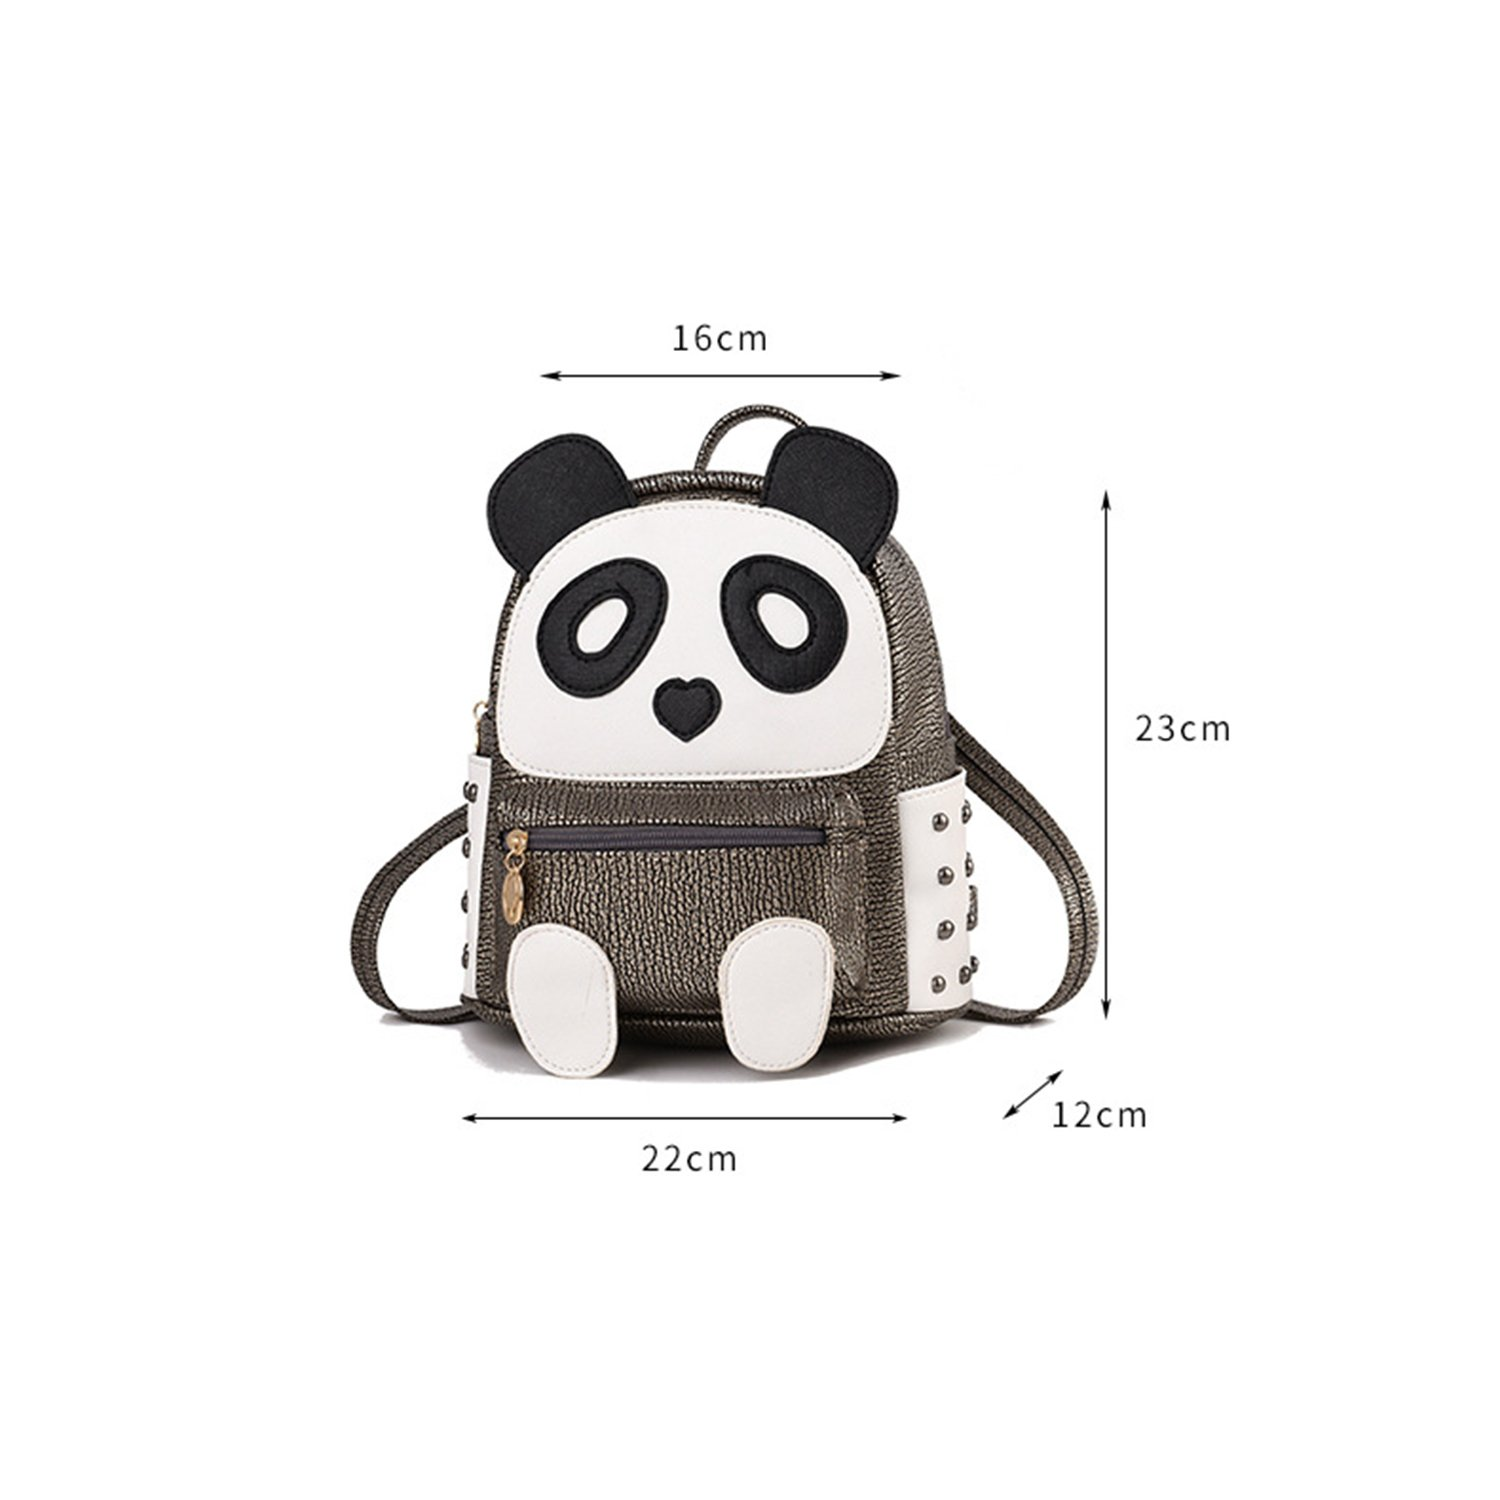 H&N Fashion PU Rivet Bronze Mini Casual Style Panda Backpack/ Shoulder/ Book Bag by H&N (Image #6)